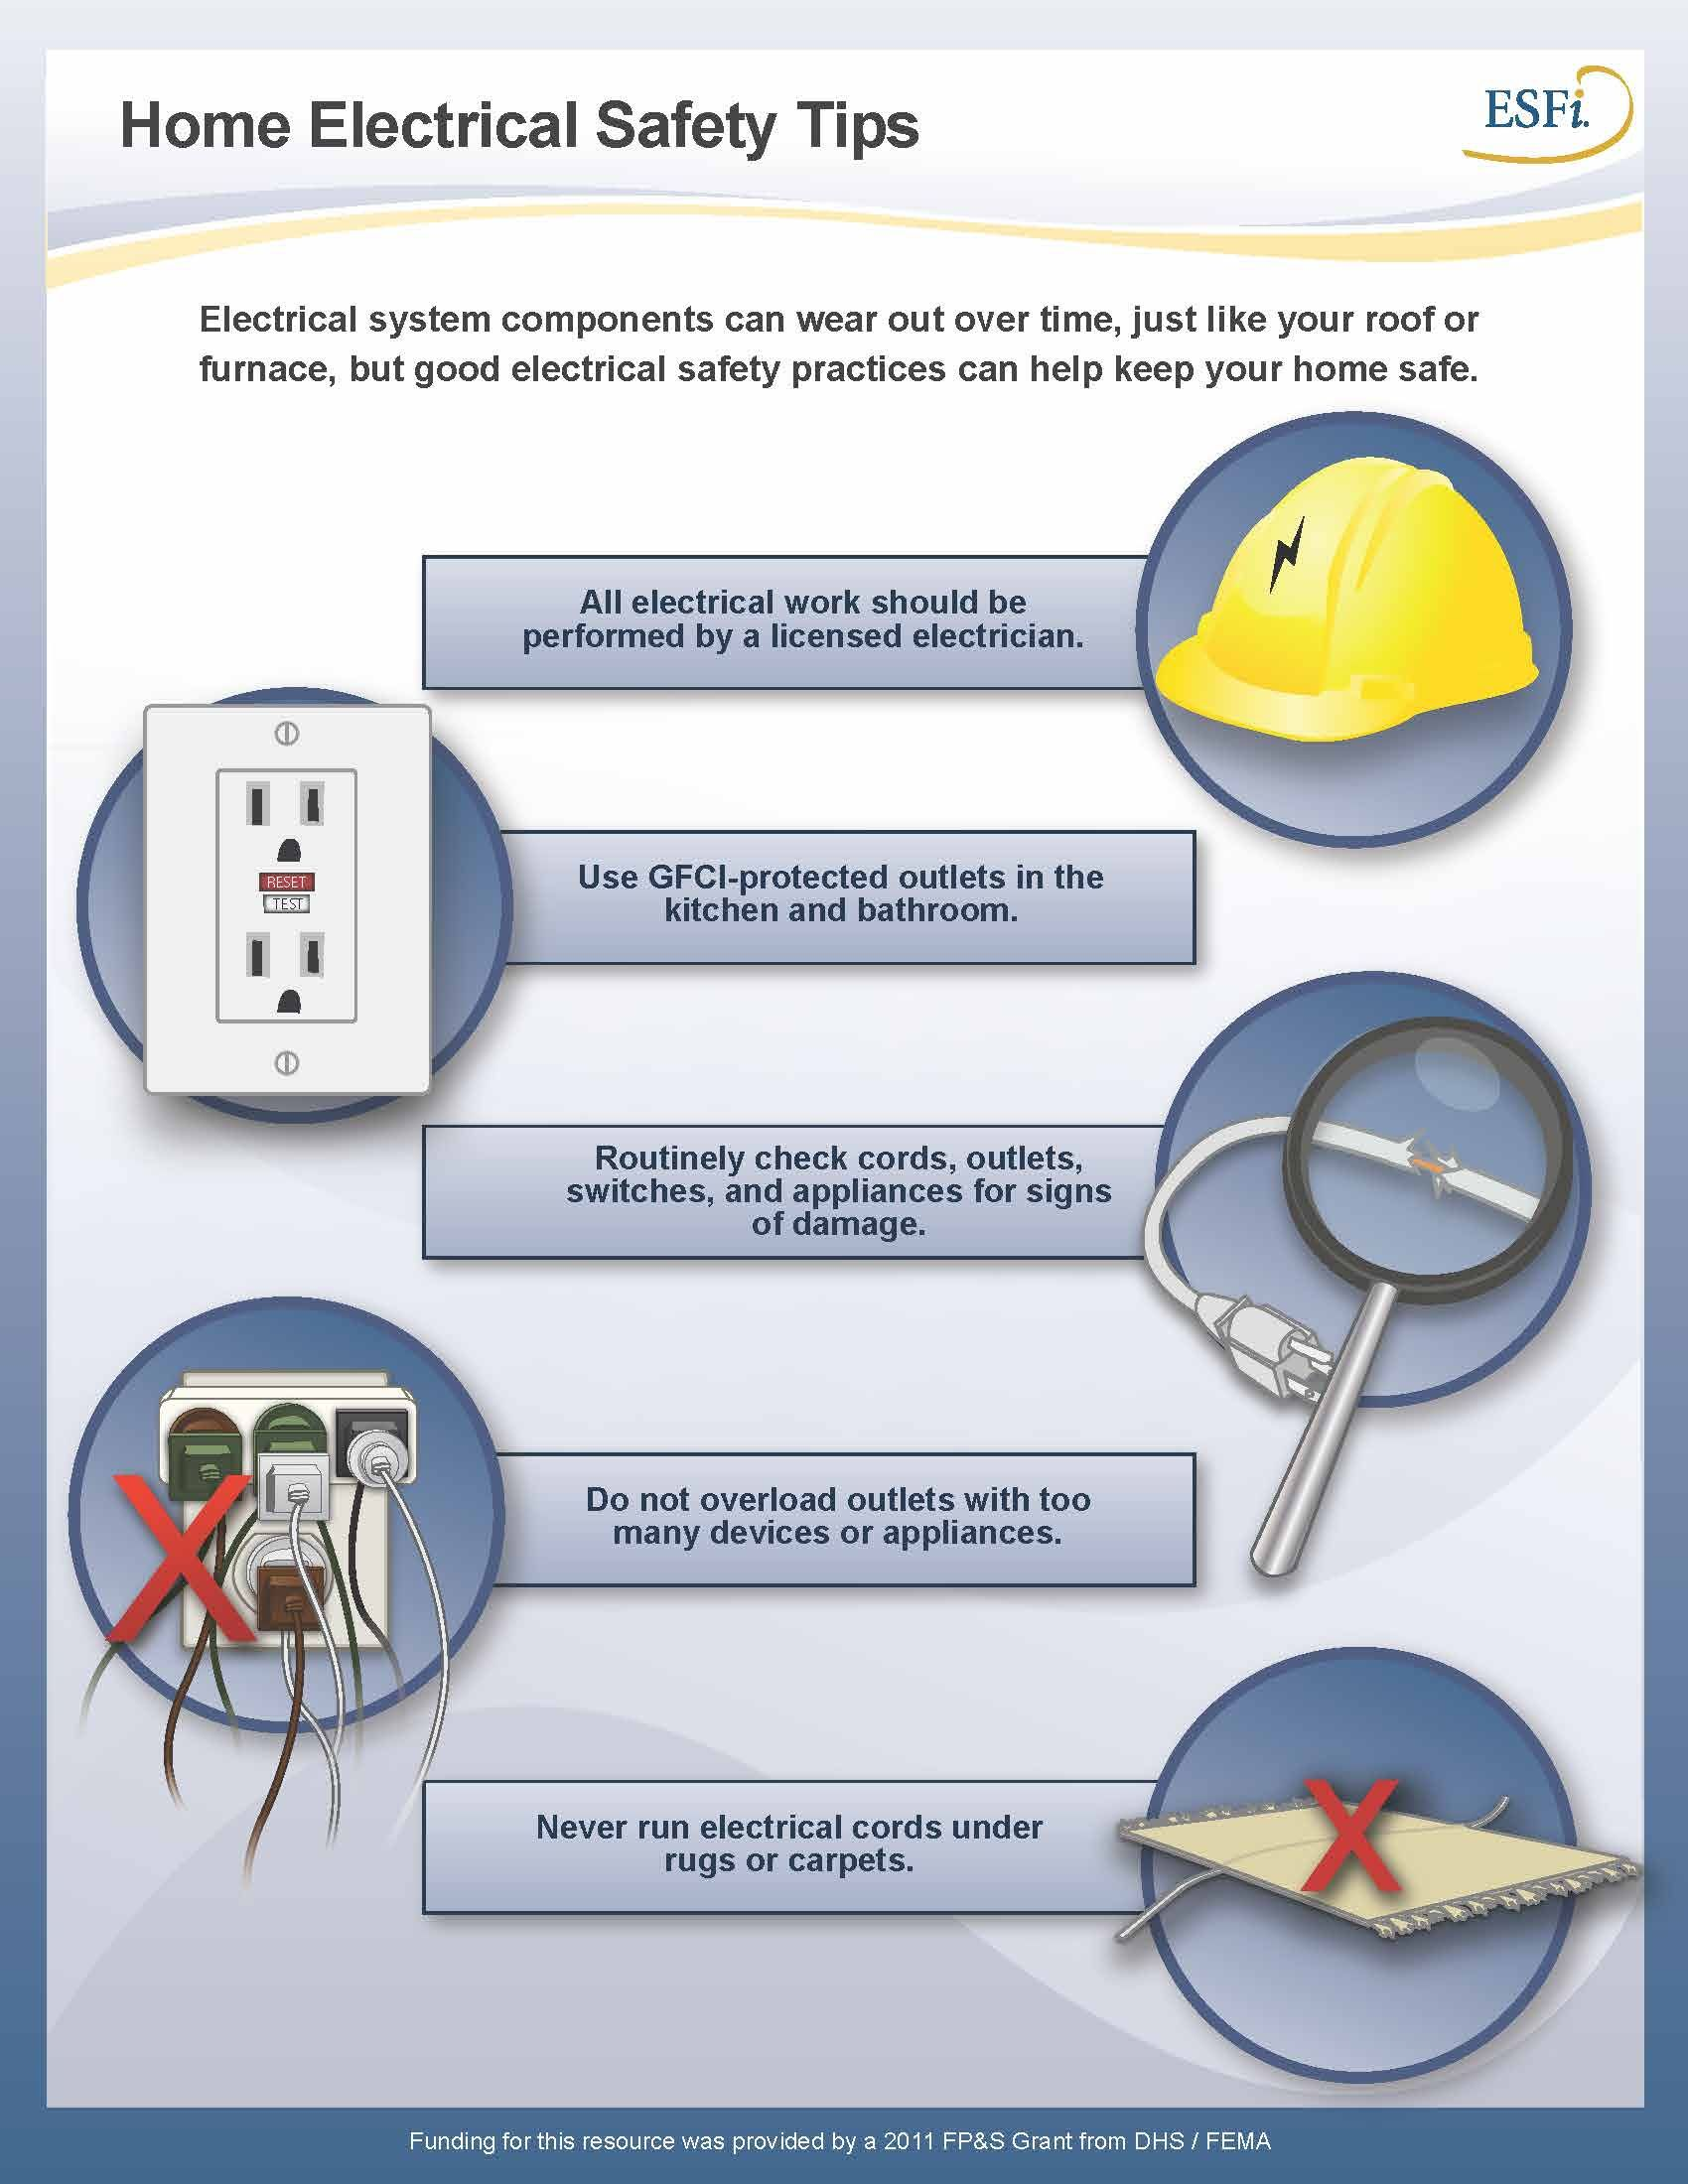 Basic Fundamentals of Electrical Safety for your home